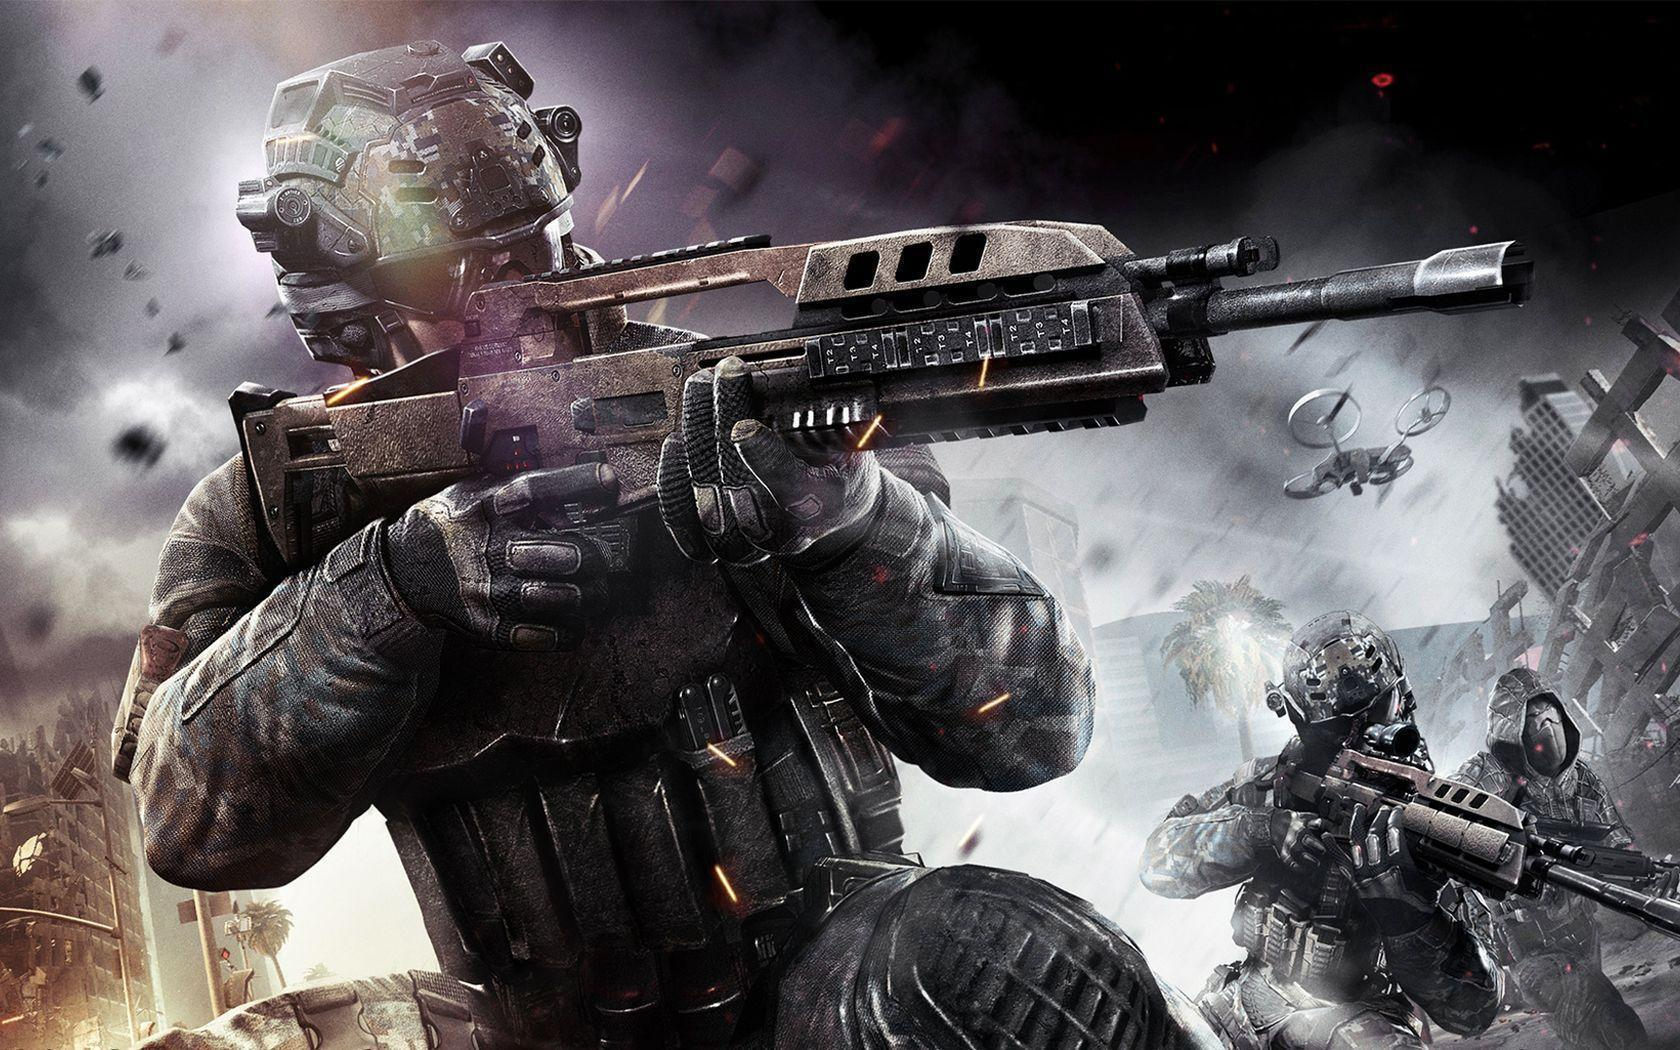 call of duty ghosts wallpapers 2560x1440 » Game Wallpapers Collections